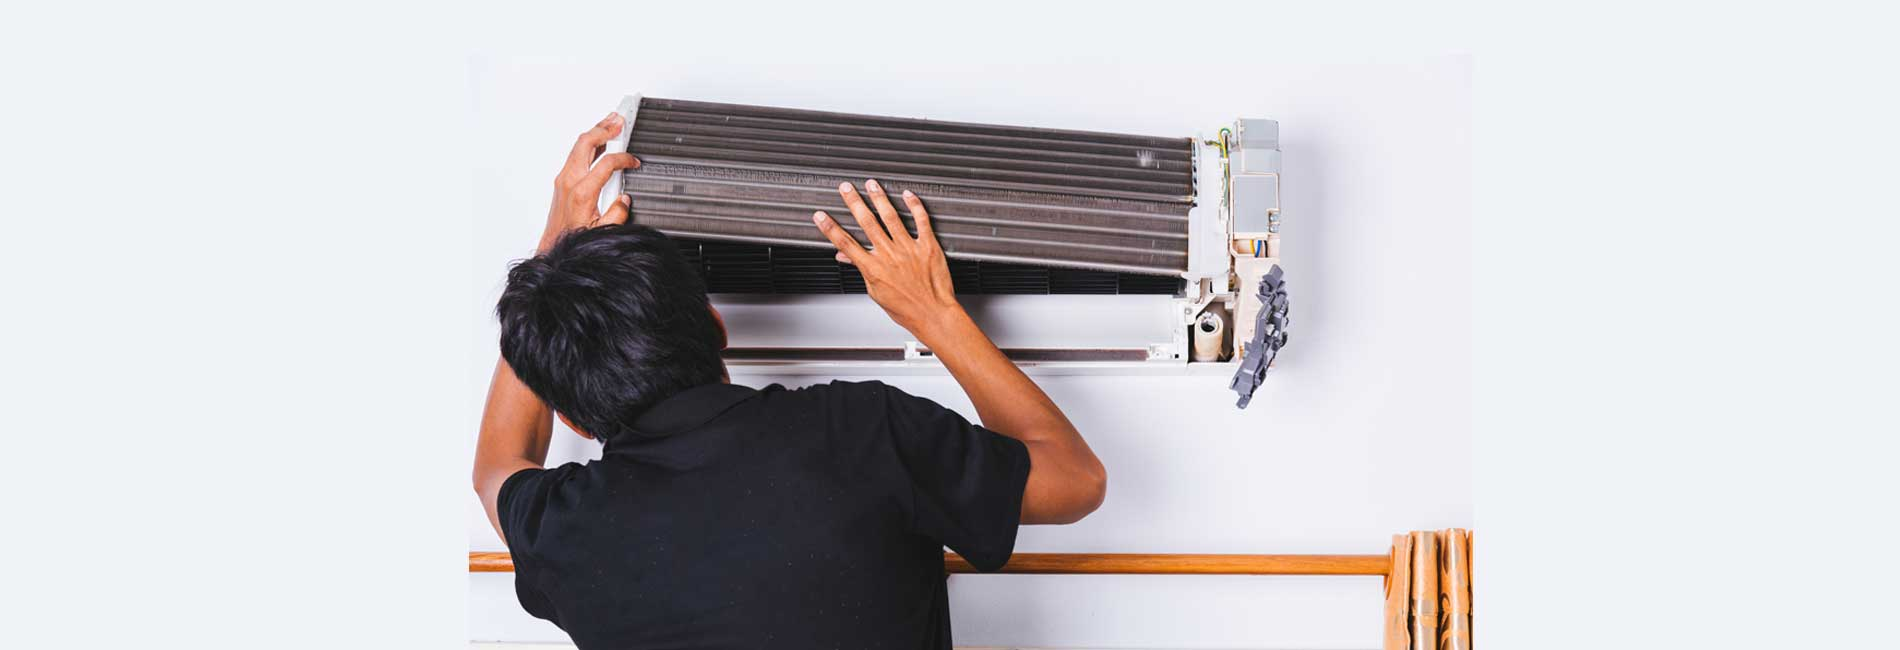 Panasonic Split AC Uninstallation in Thoraipakkam